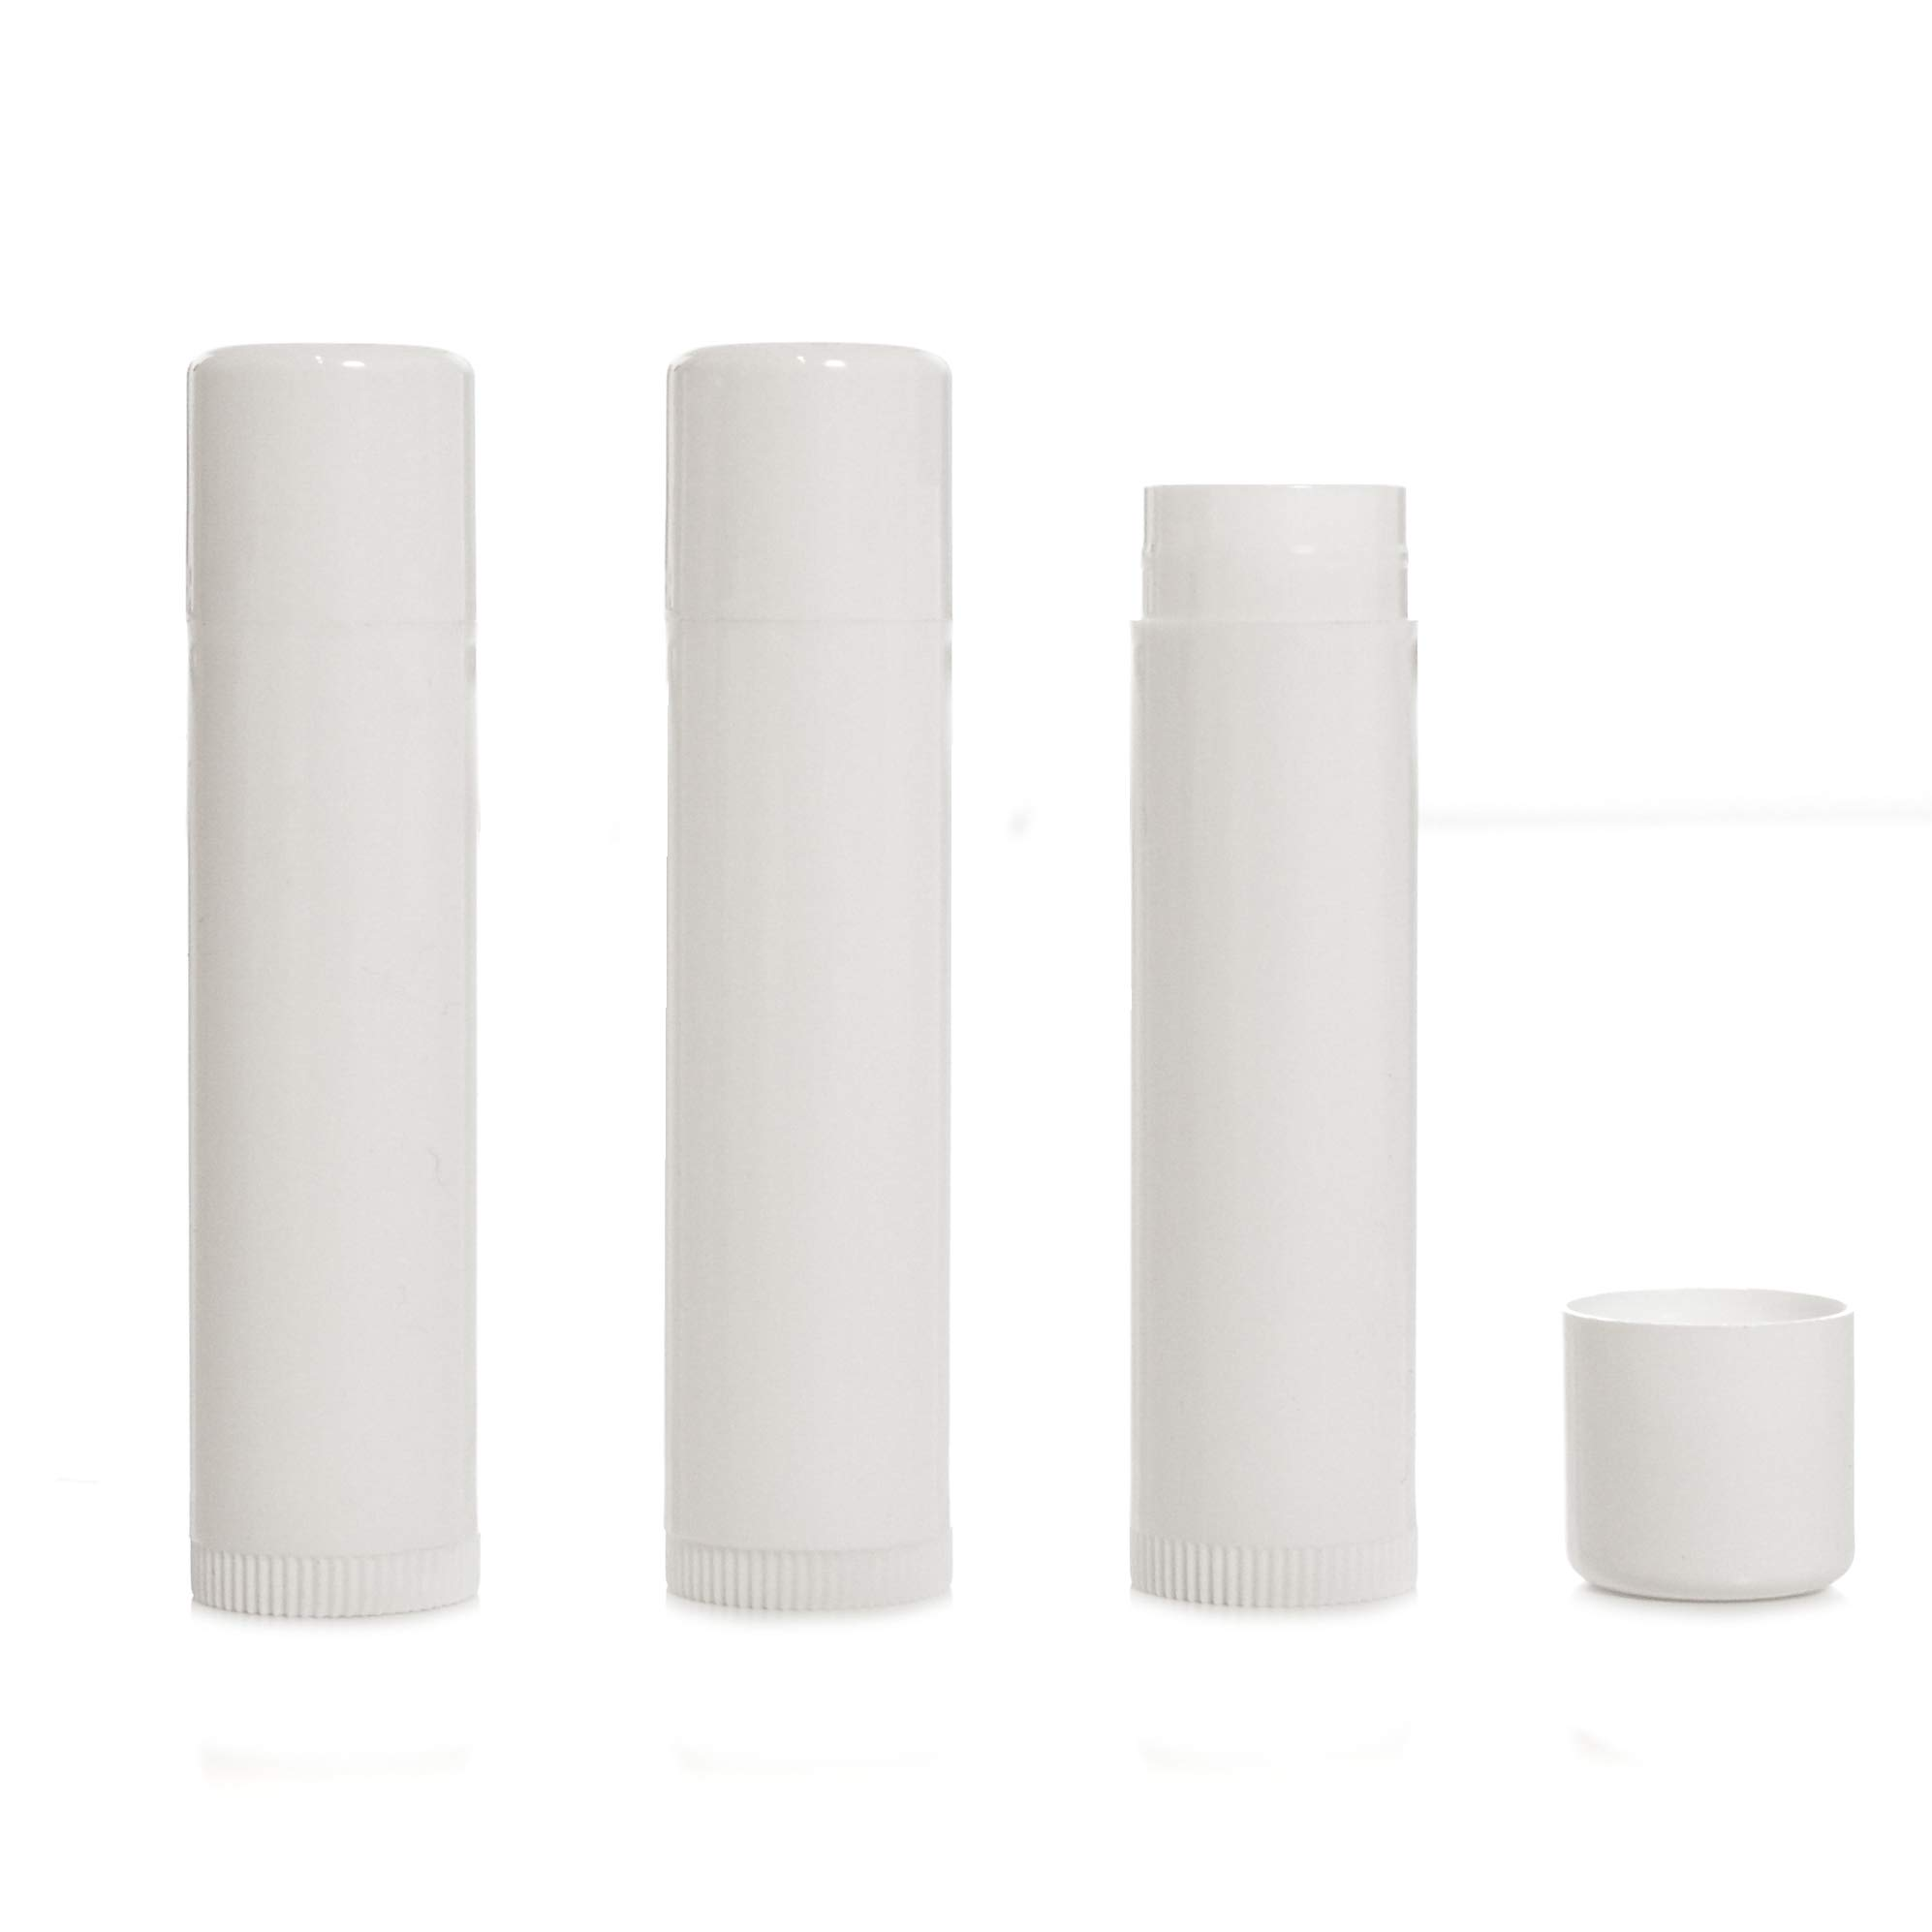 Milliard Lip Balm Crafting Tube Refills -BPA Free- 100 Pack - White by Milliard